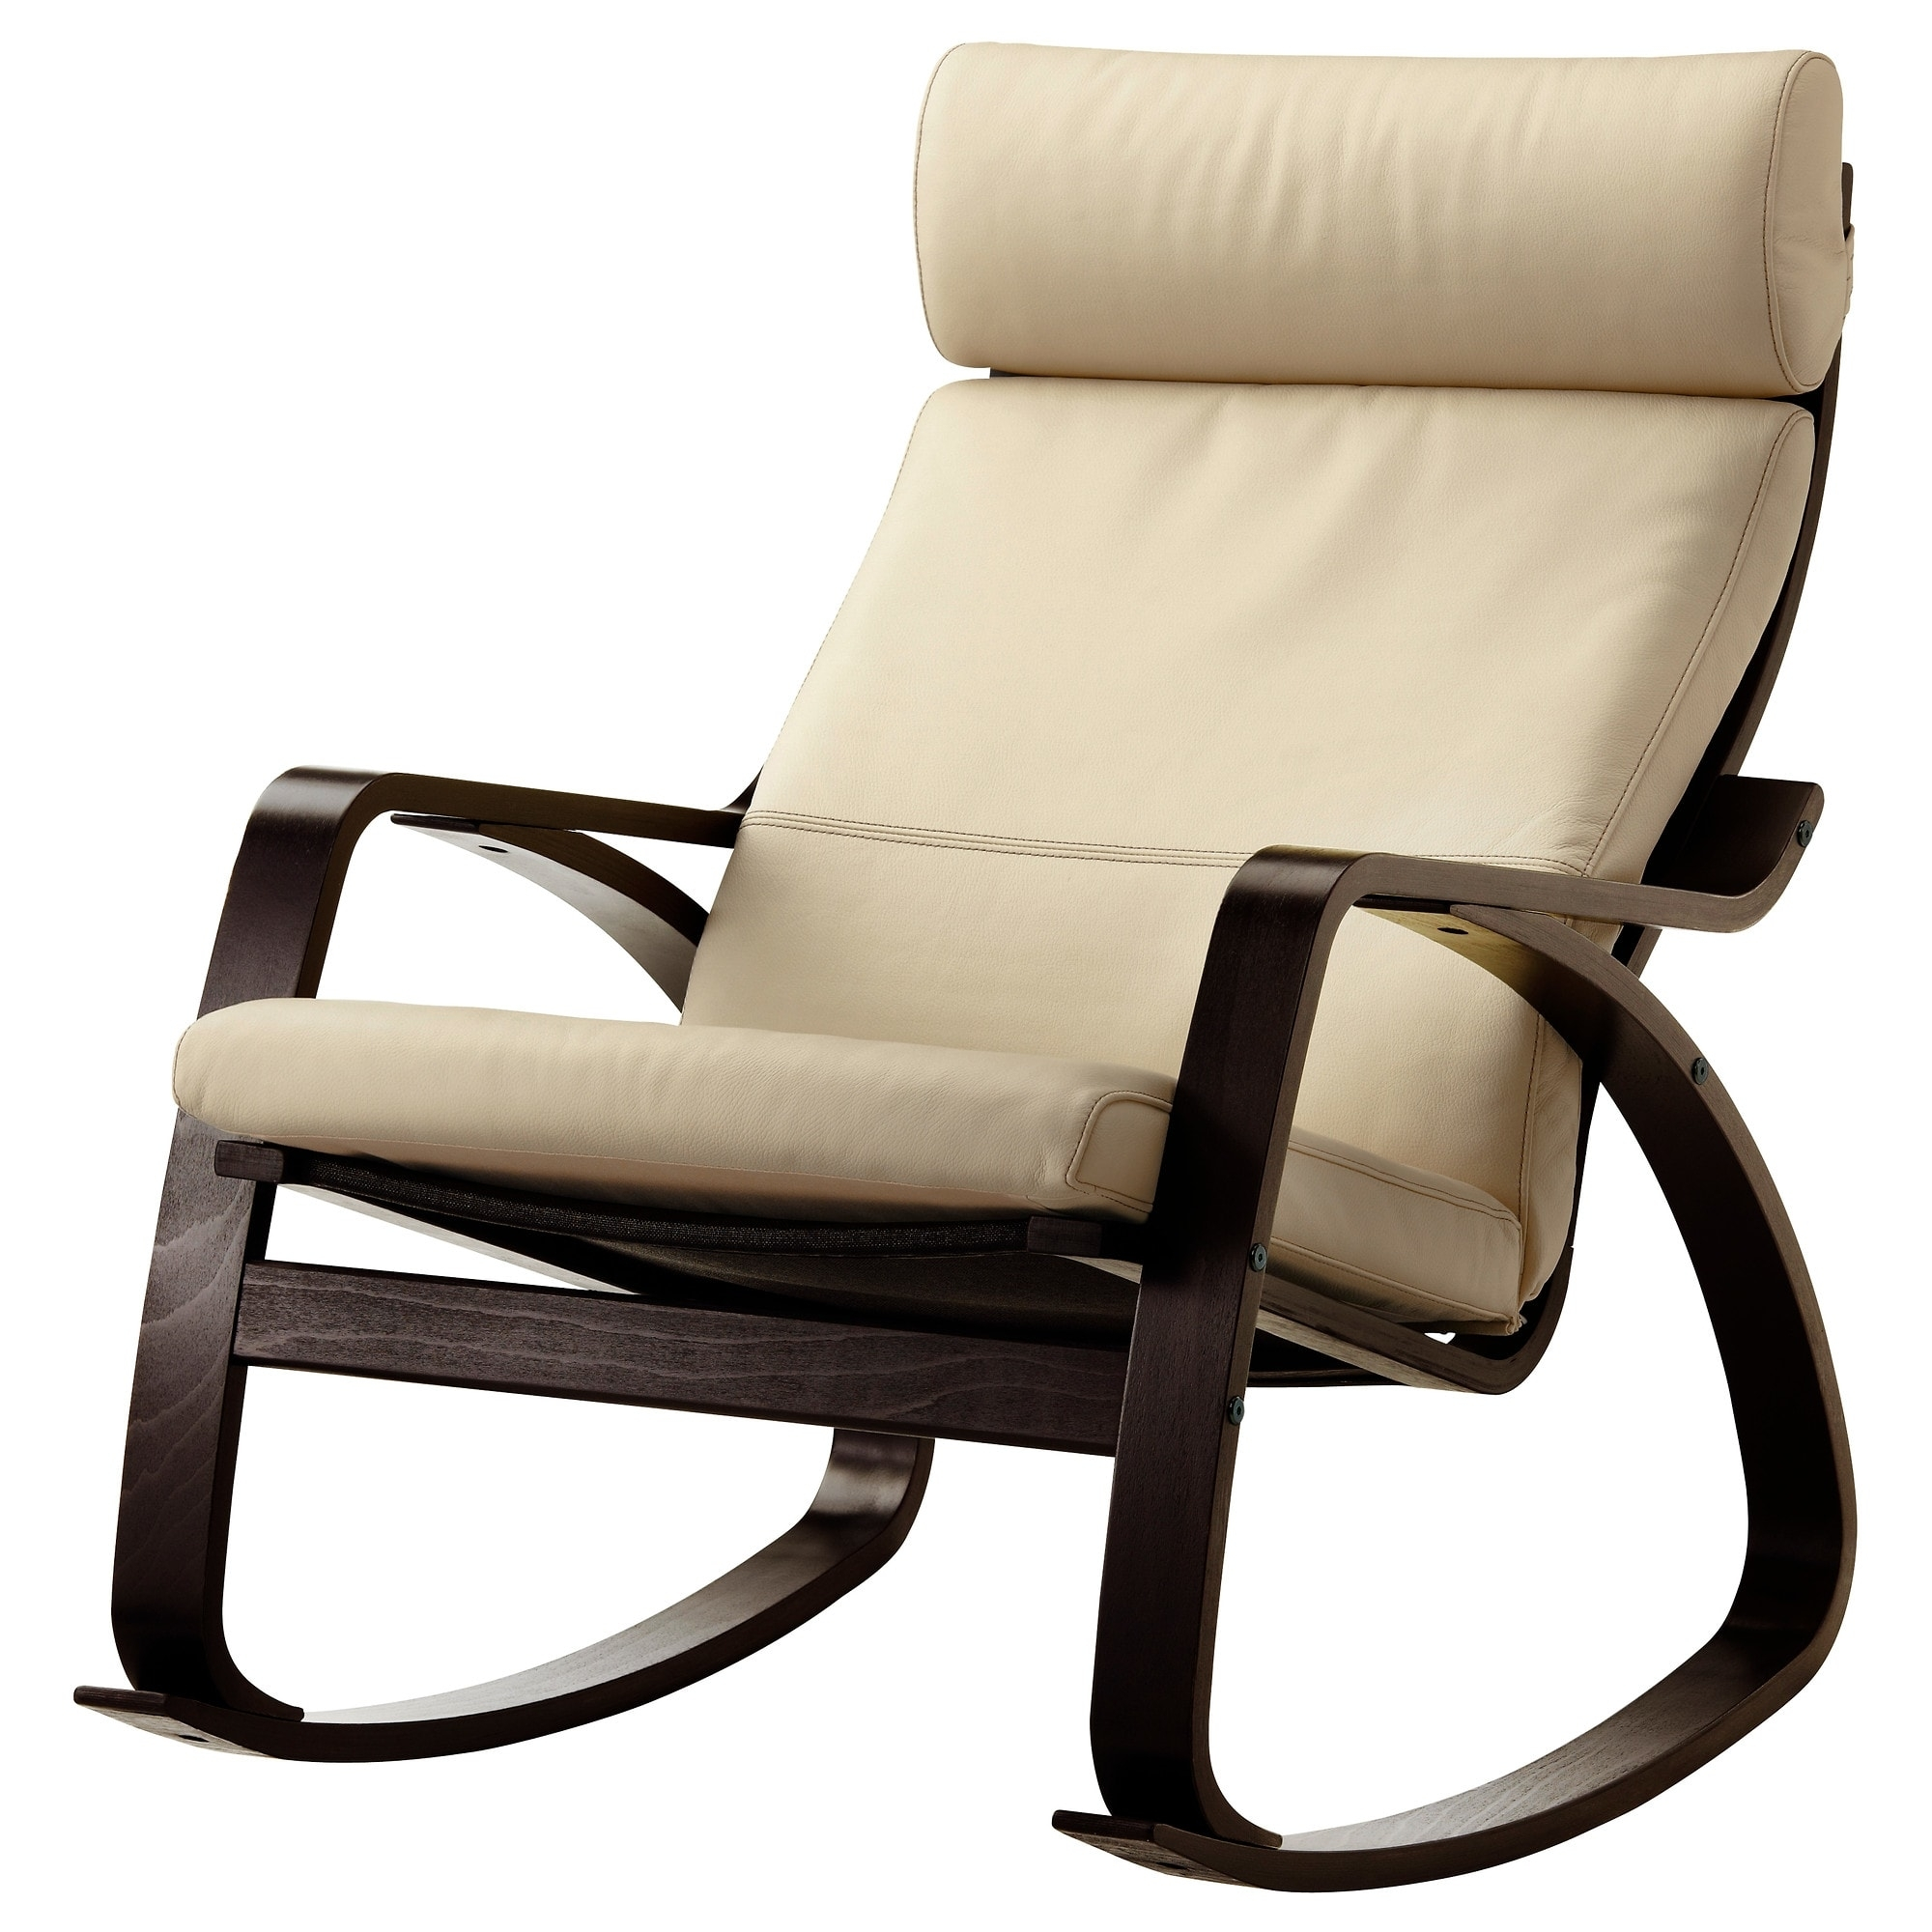 Poäng – Ikea Intended For Rocking Chairs With Lumbar Support (View 9 of 15)